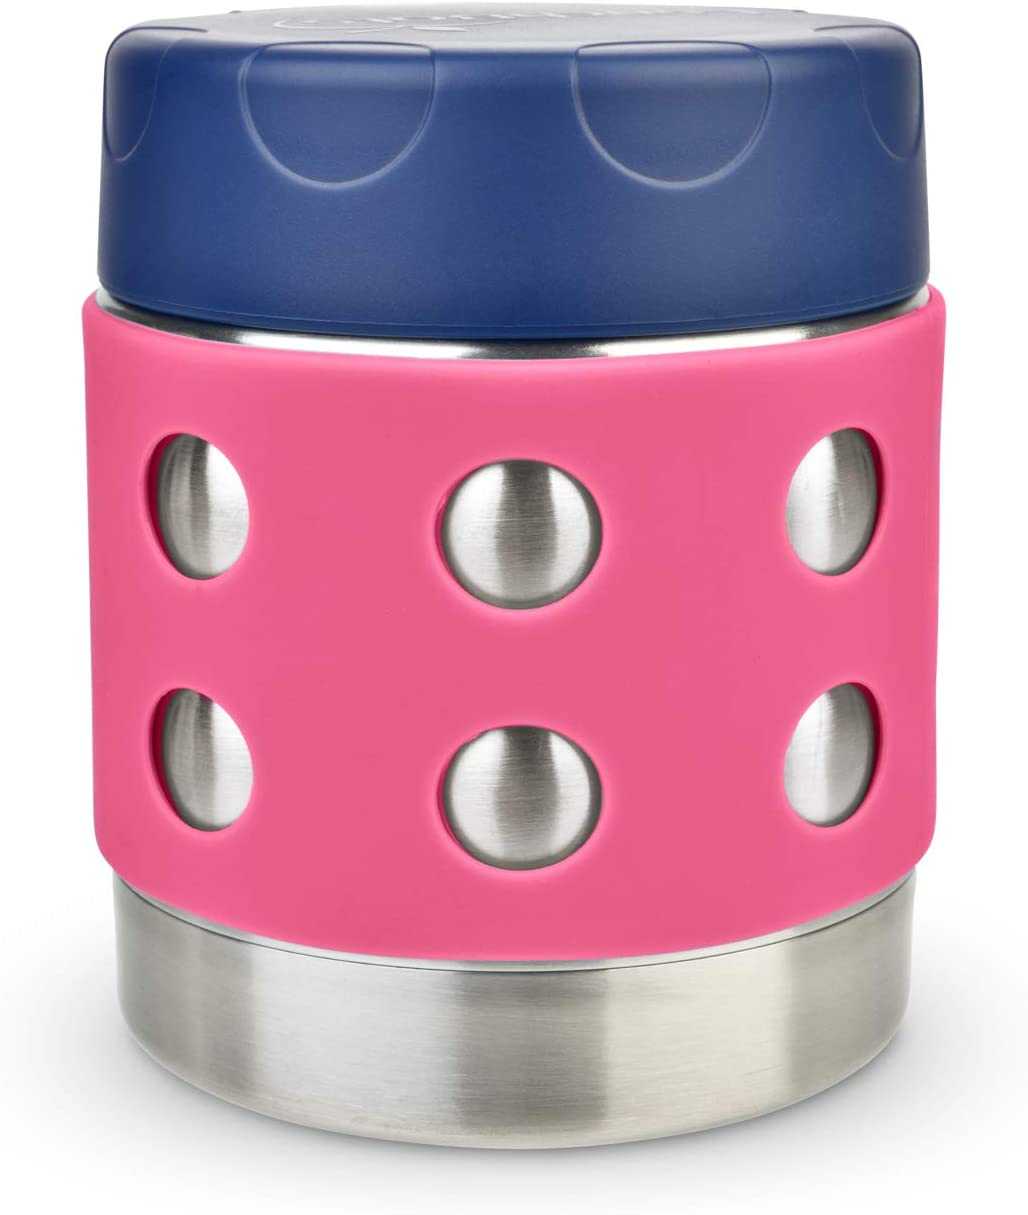 LunchBots Thermal 8 oz Triple Insulated Food Container - Hot 6 Hours or Cold 12 Hours - Leak Proof Thermos Soup Jar - All Stainless Interior - Navy Lid - Pink Dots